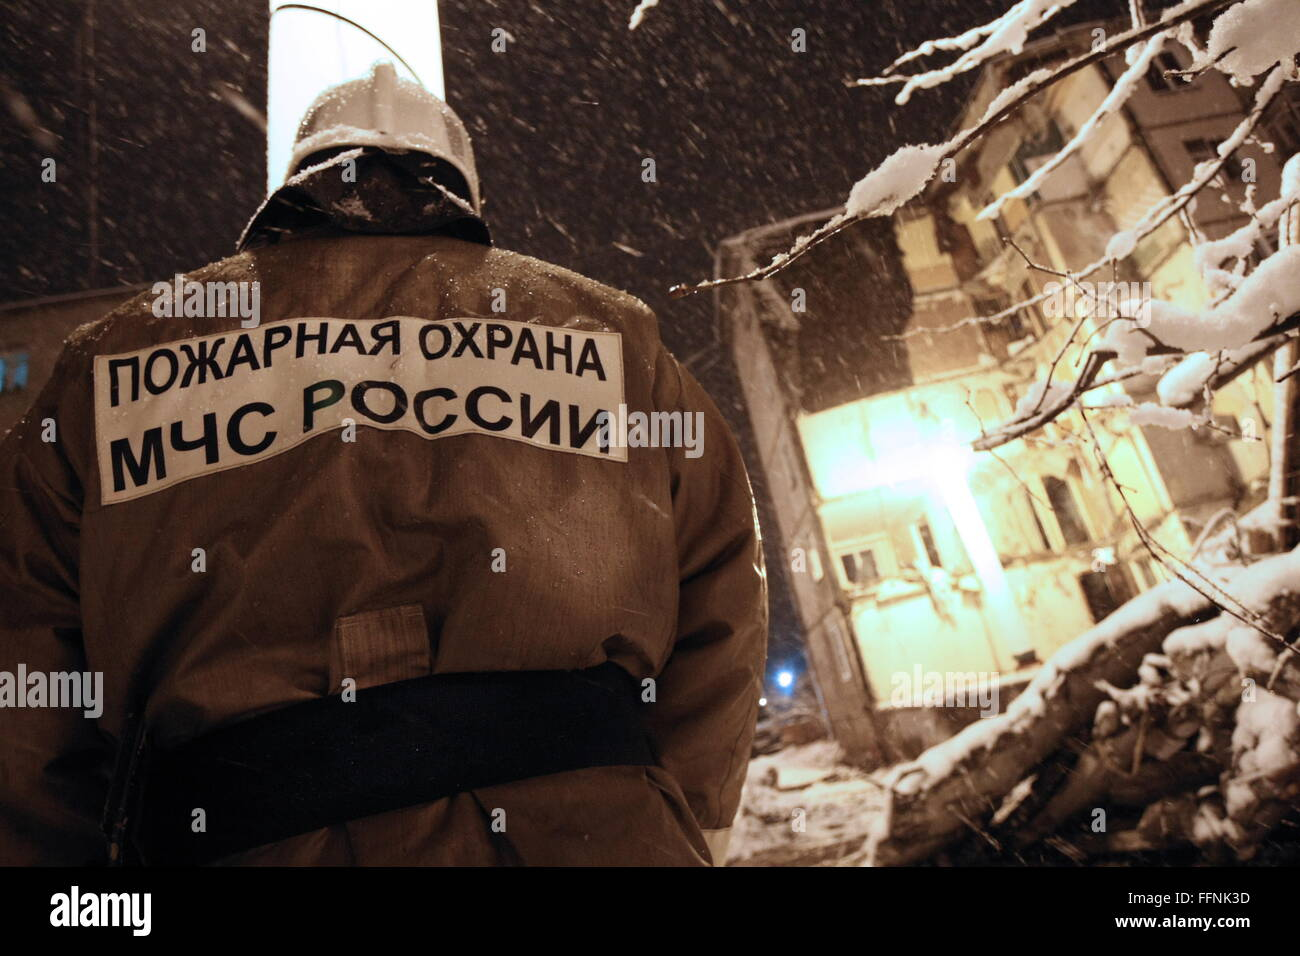 YAROSLAVL, RUSSIA. FEBRUARY 16, 2016. The site of a blast in a block of flats in 6th Zheleznodorozhnaya Street in - Stock Image